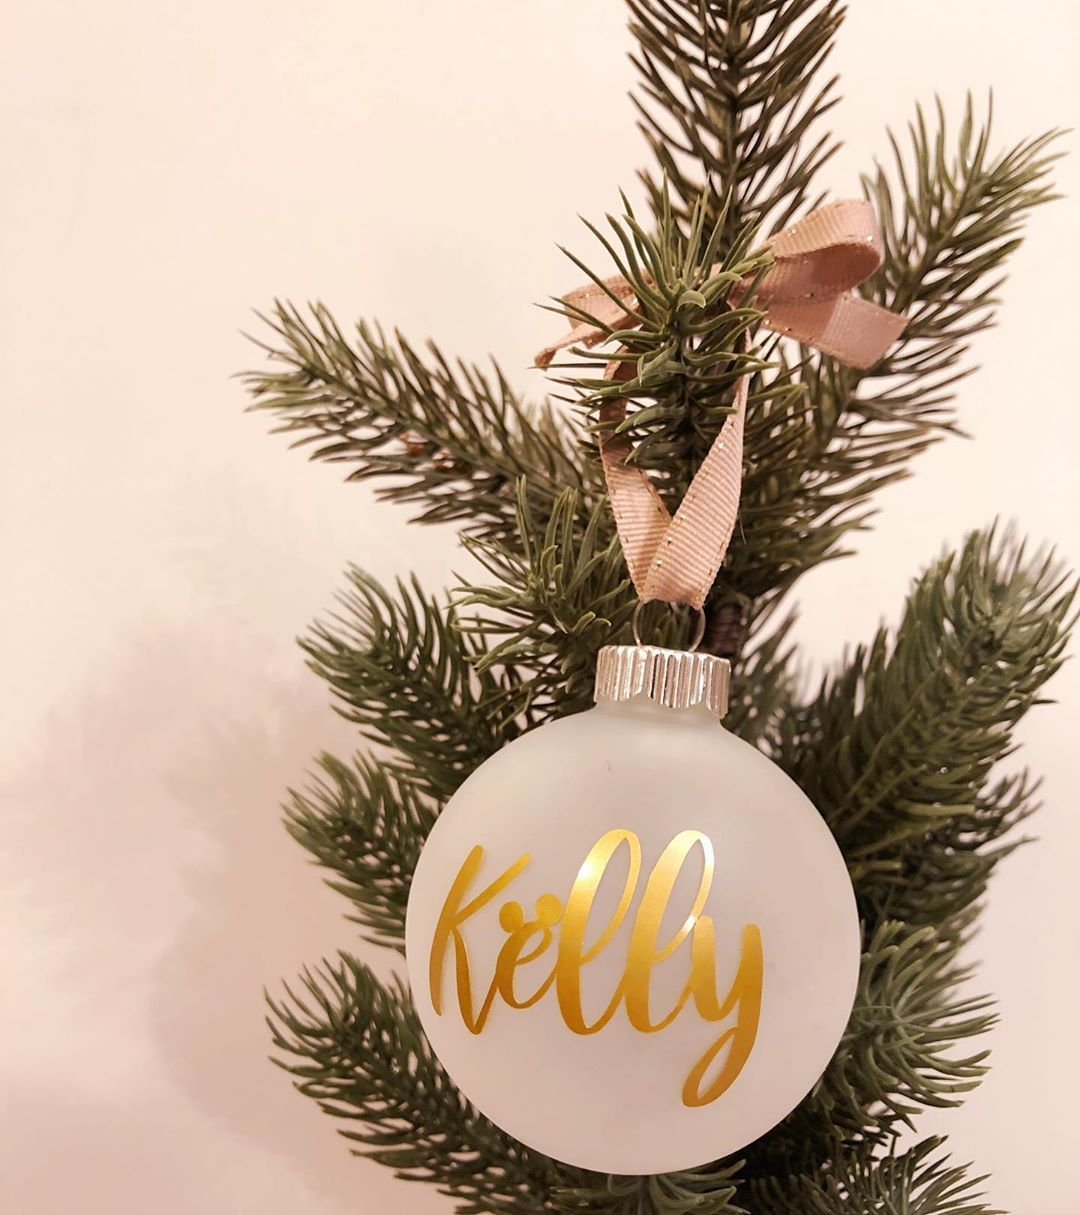 Whats your favorite color to decorate with during the holidays? Red? Green?  Si | Christmas bulbs, Holiday red, Christmas home